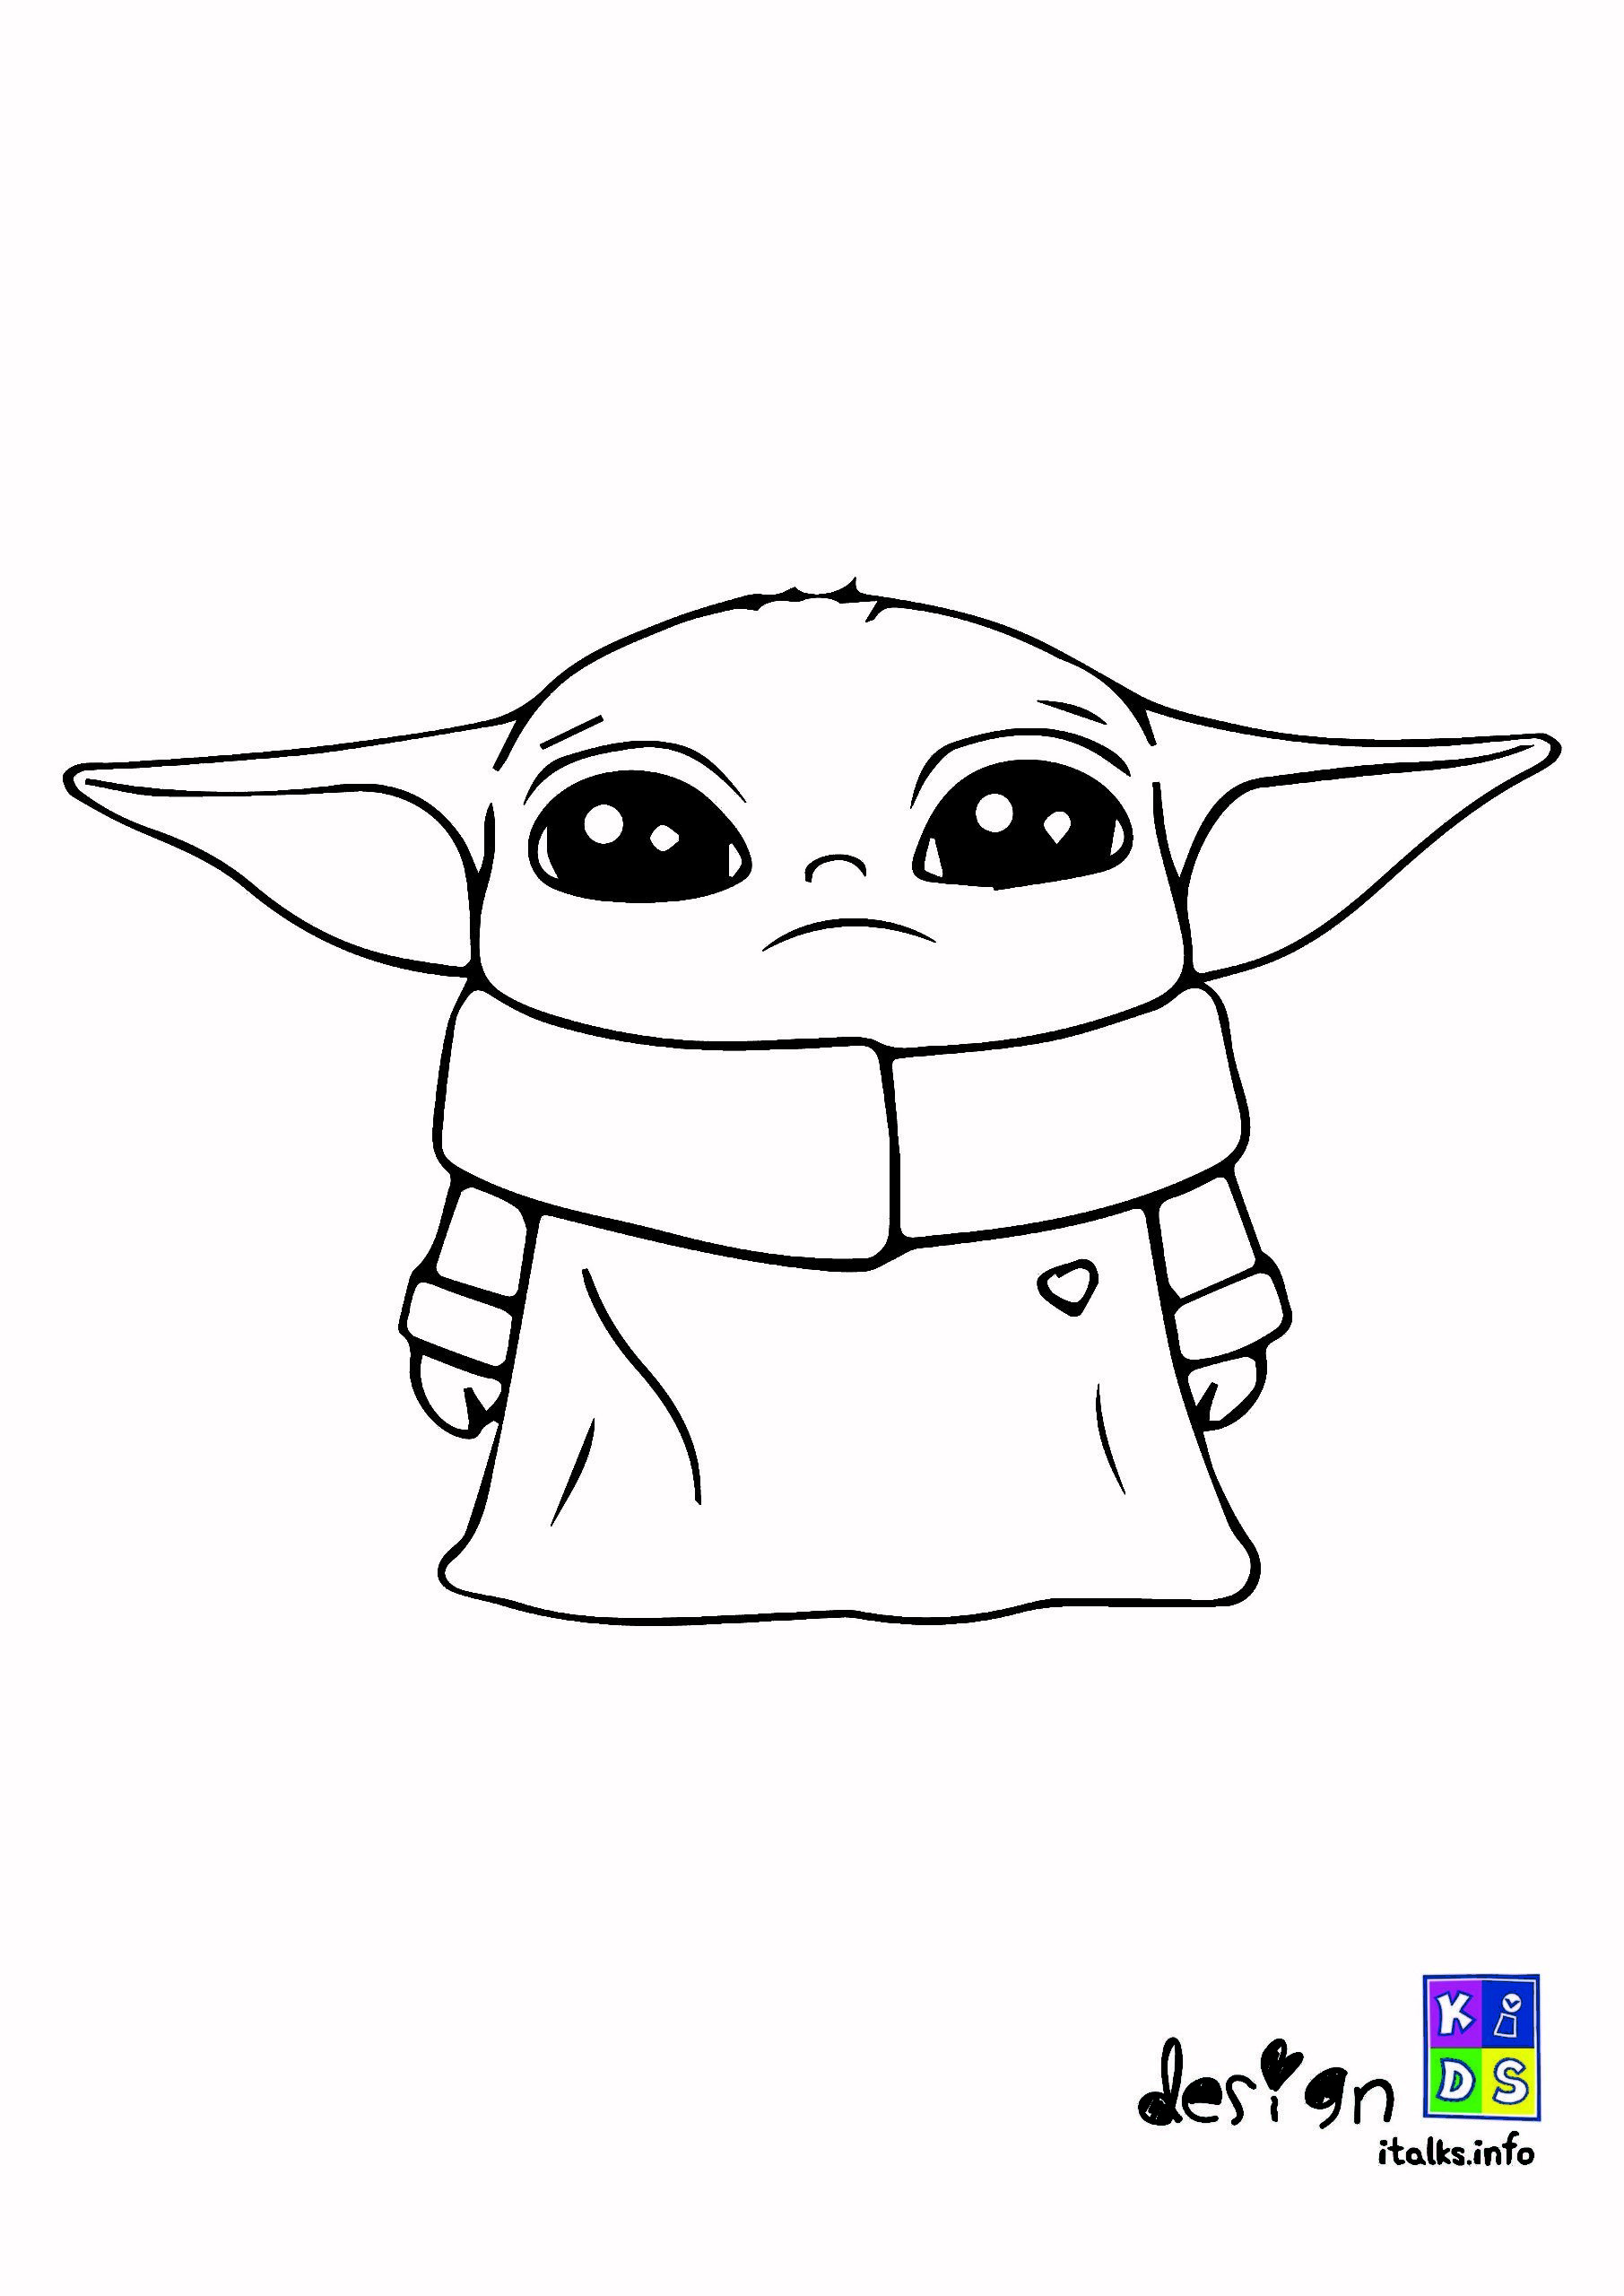 Baby Yoda Coloring Design For Kids Color Design Color Design